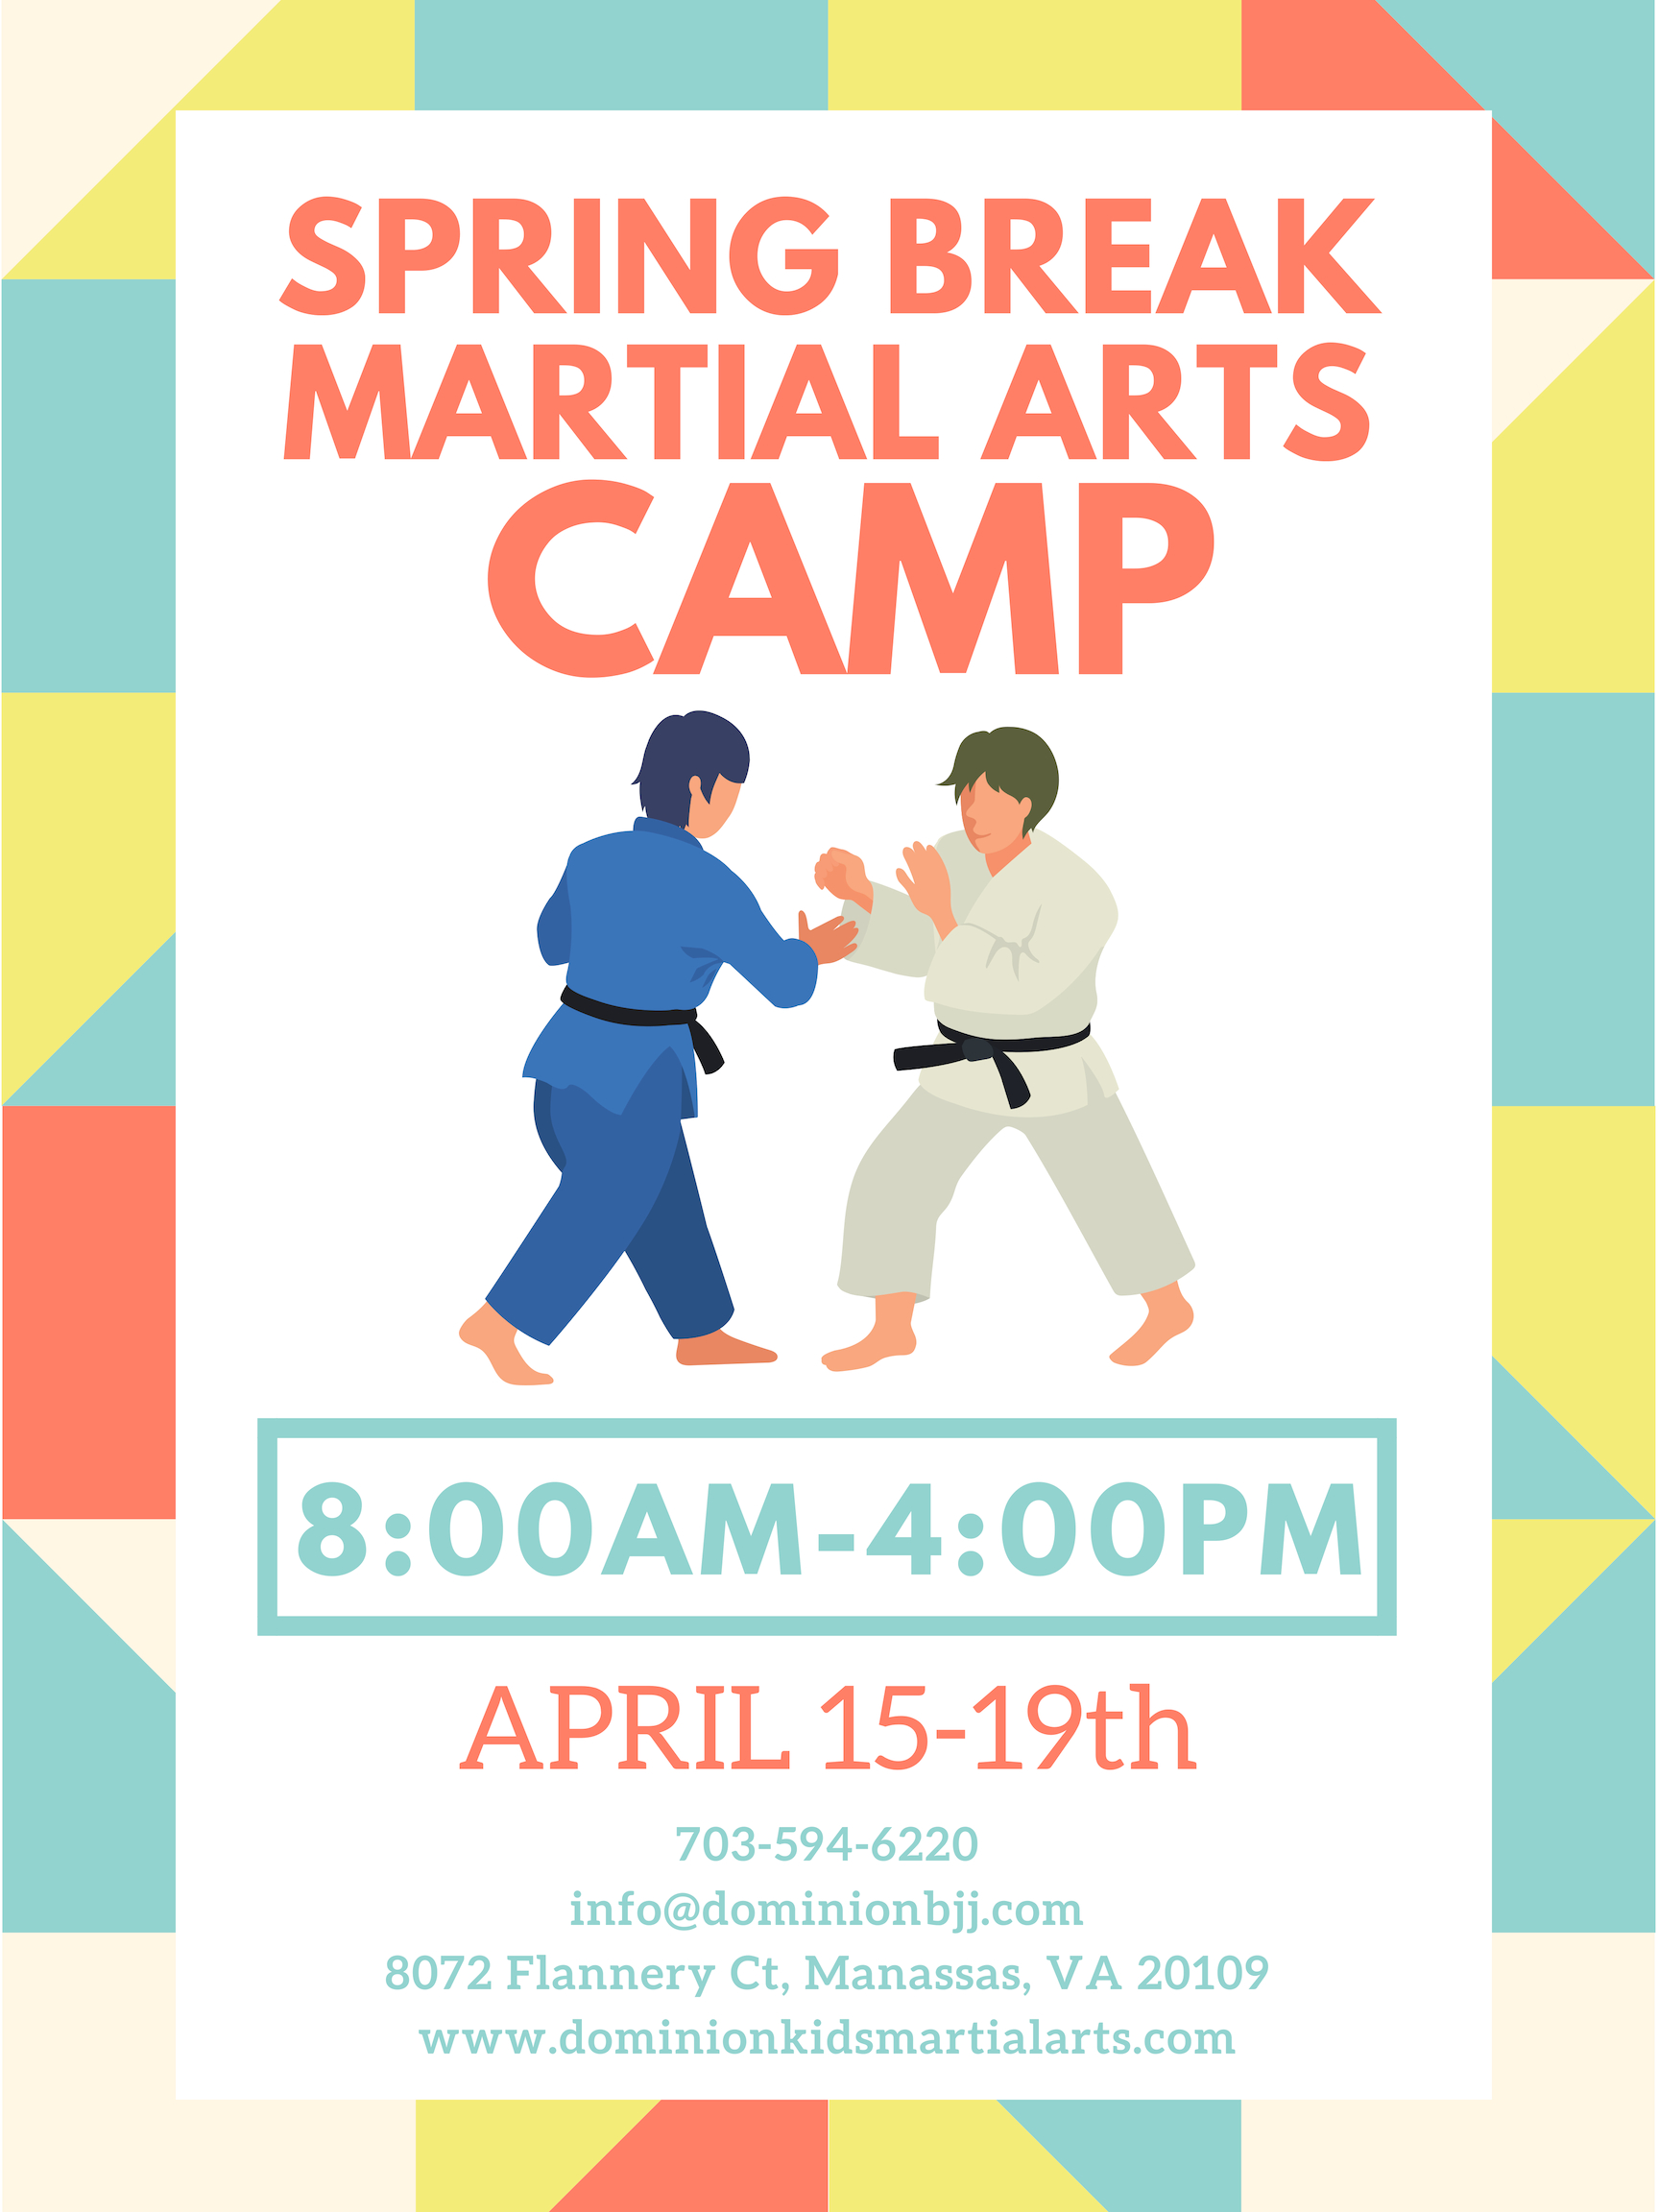 Spring Break Camp at Dominion Kids Martial Arts